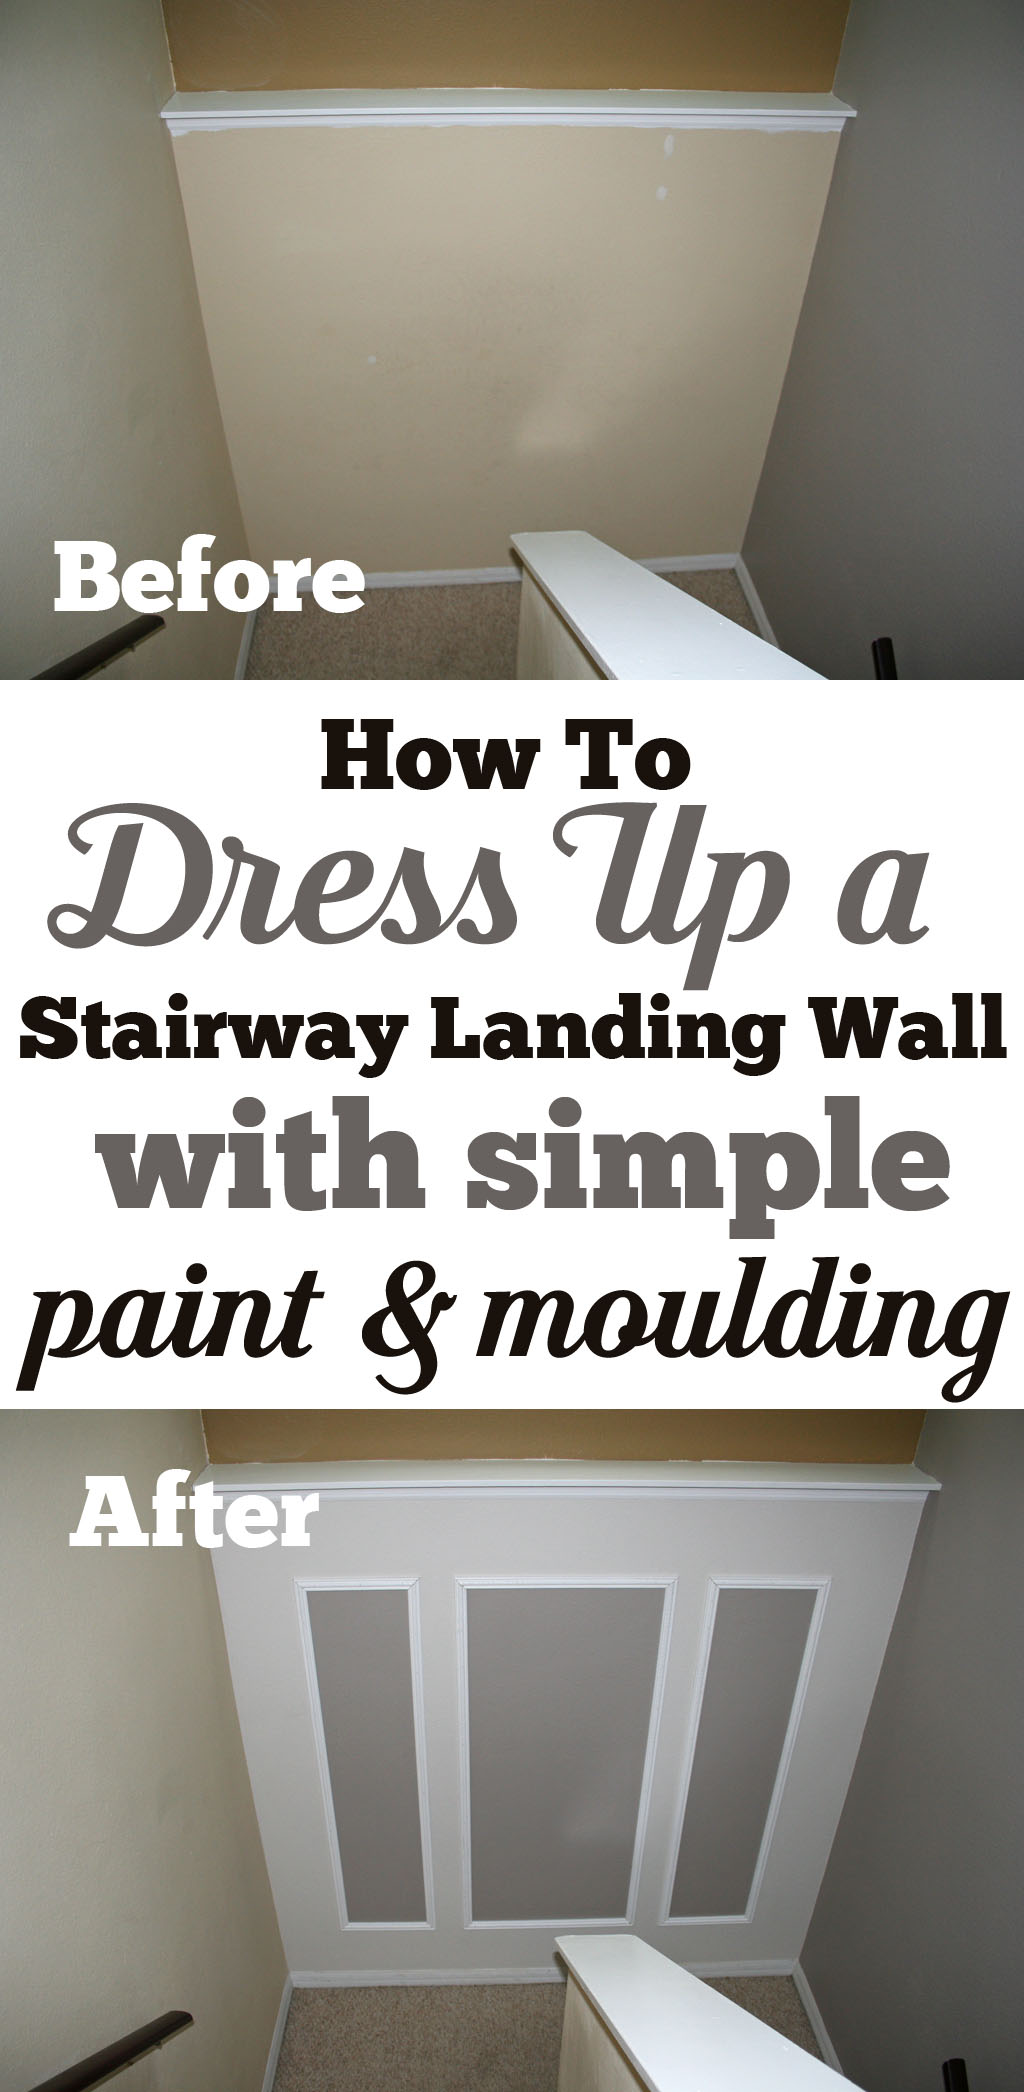 This 5 to 6 hour project using only paint and moulding will completely transform your stairway landing wall or any transition wall in your home.